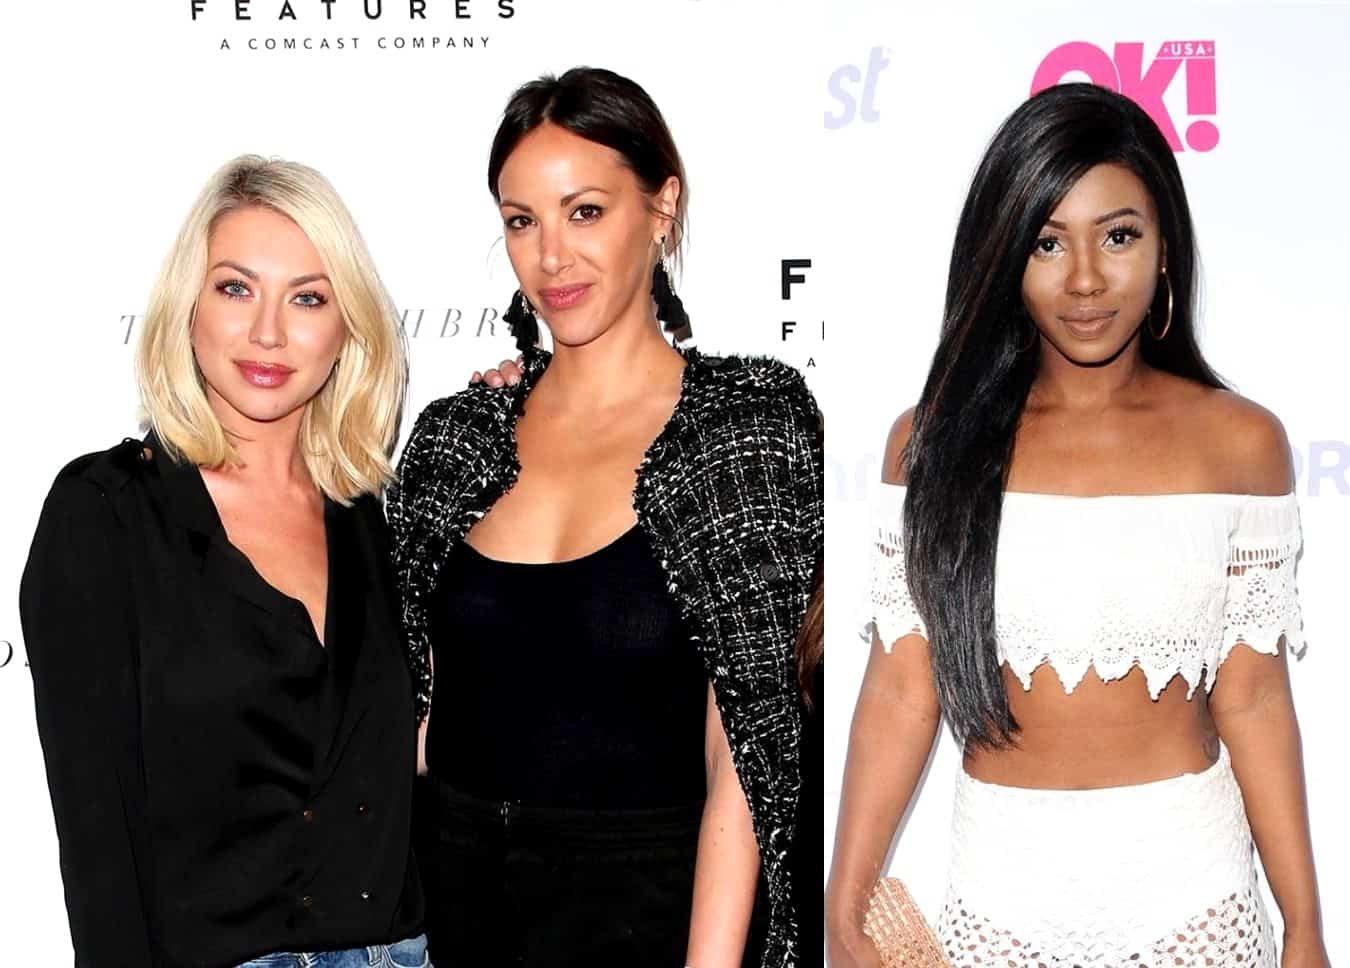 Bravo Officially Fires Stassi Schroeder and Kristen Doute From Vanderpump Rules After Racism Scandal Involving Faith Stowers, Max Boyens and Brett Caprioni Also Get the Boot